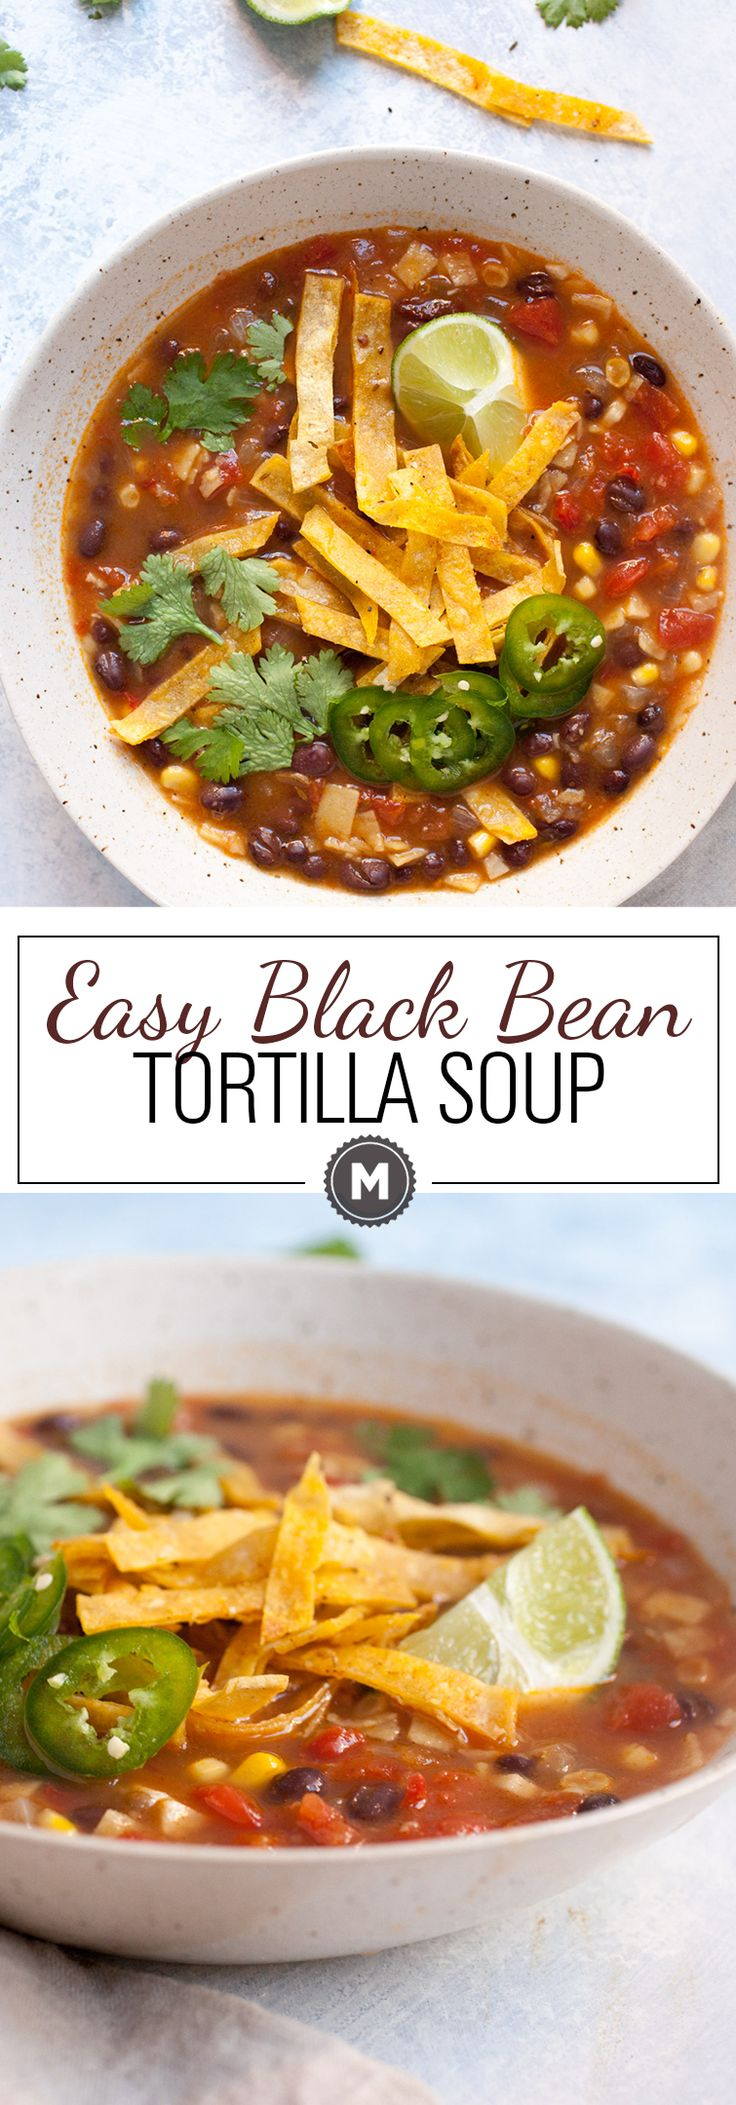 Easy Black Bean Tortilla Soup: When you have no time, but want a really delicious and warming bowl of soup, this is the recipe for you! It's embarrassingly simple to make, but has great flavors. Take the time to make the crispy tortilla strips. They make the difference! | macheesmo.com